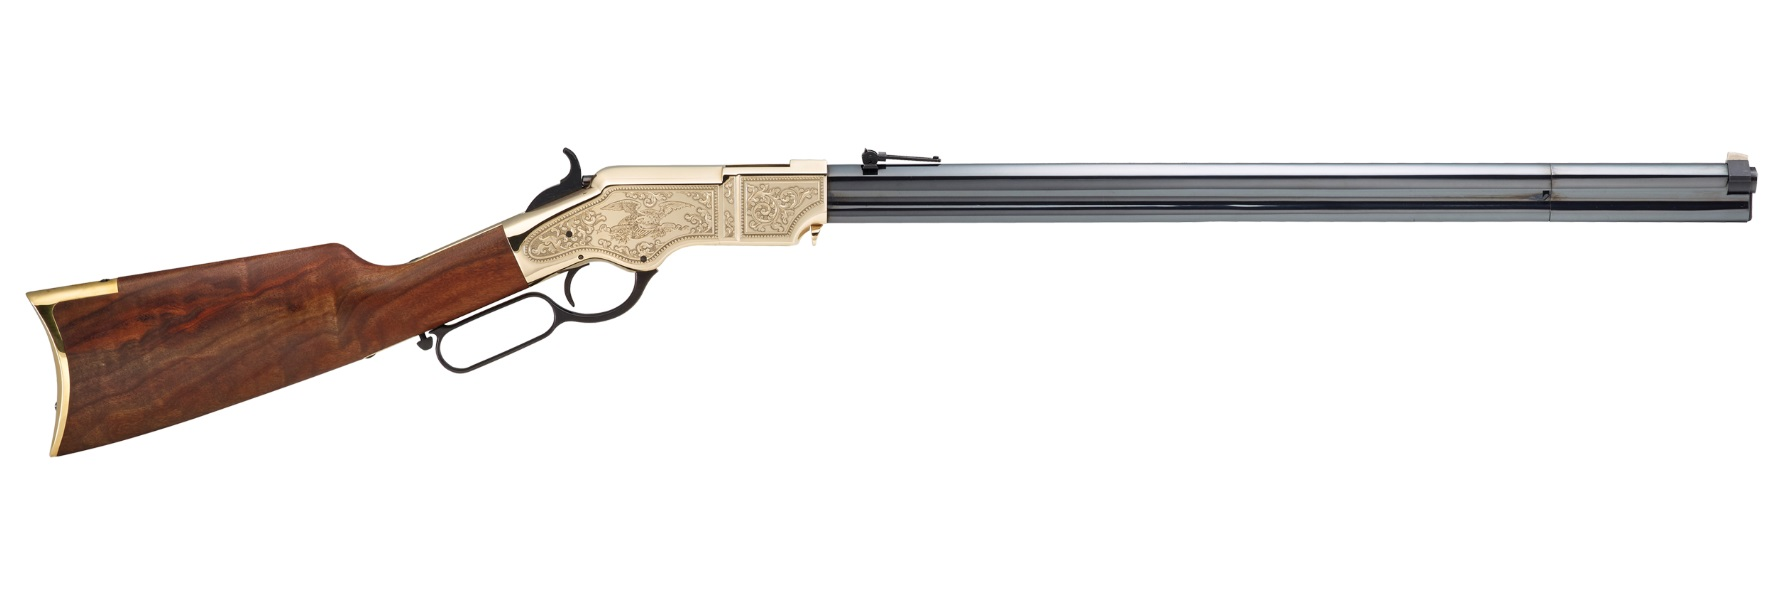 Henry Repeating Arms The New Original Henry Deluxe 44-40